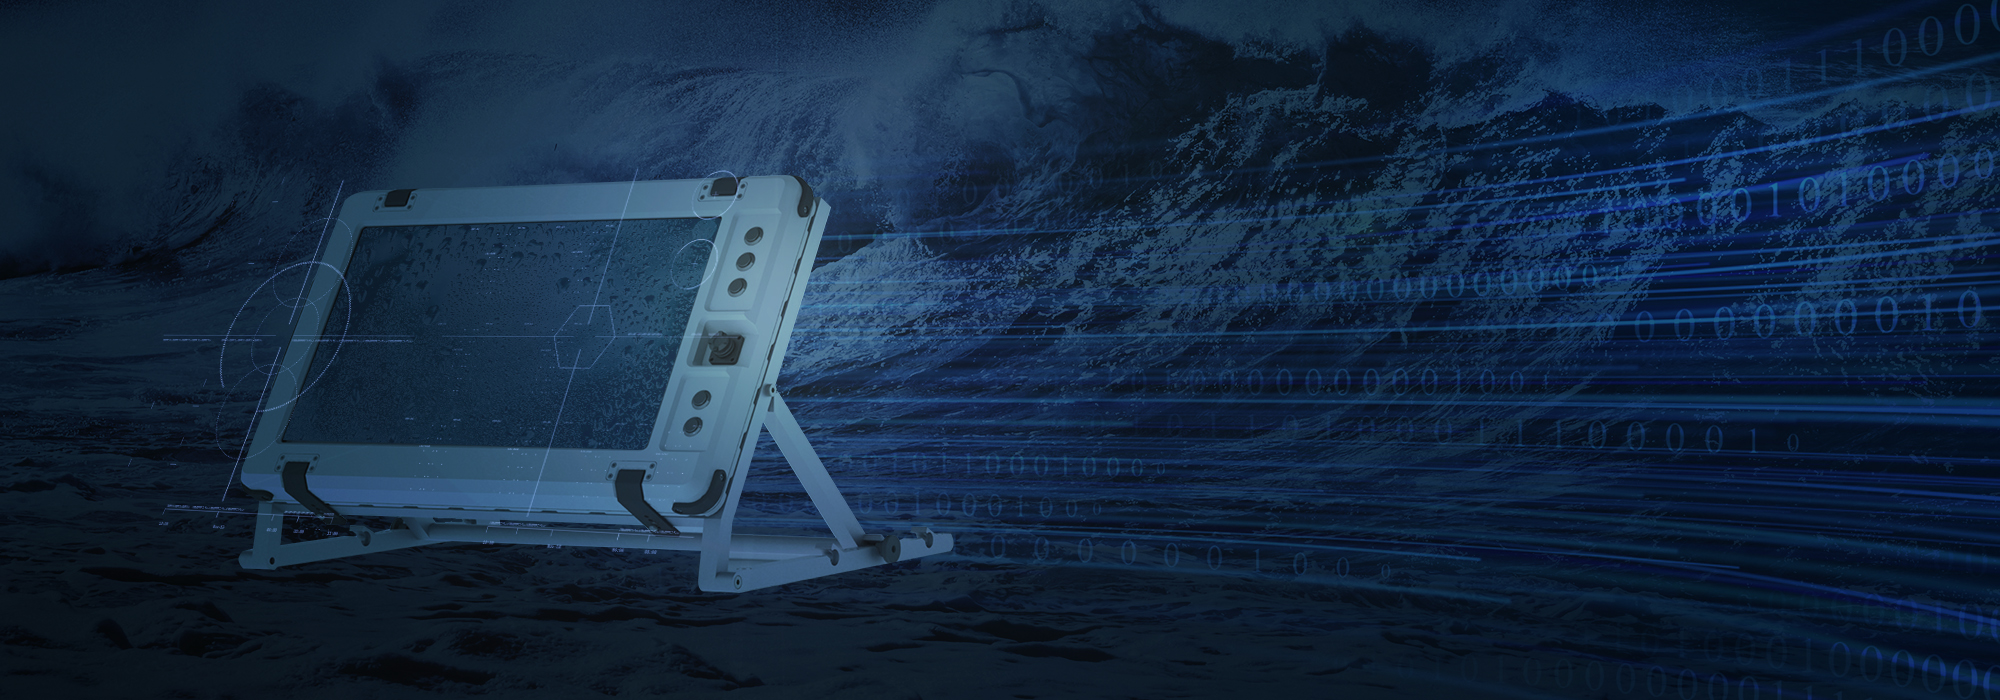 Rugged solutions for extreme conditions